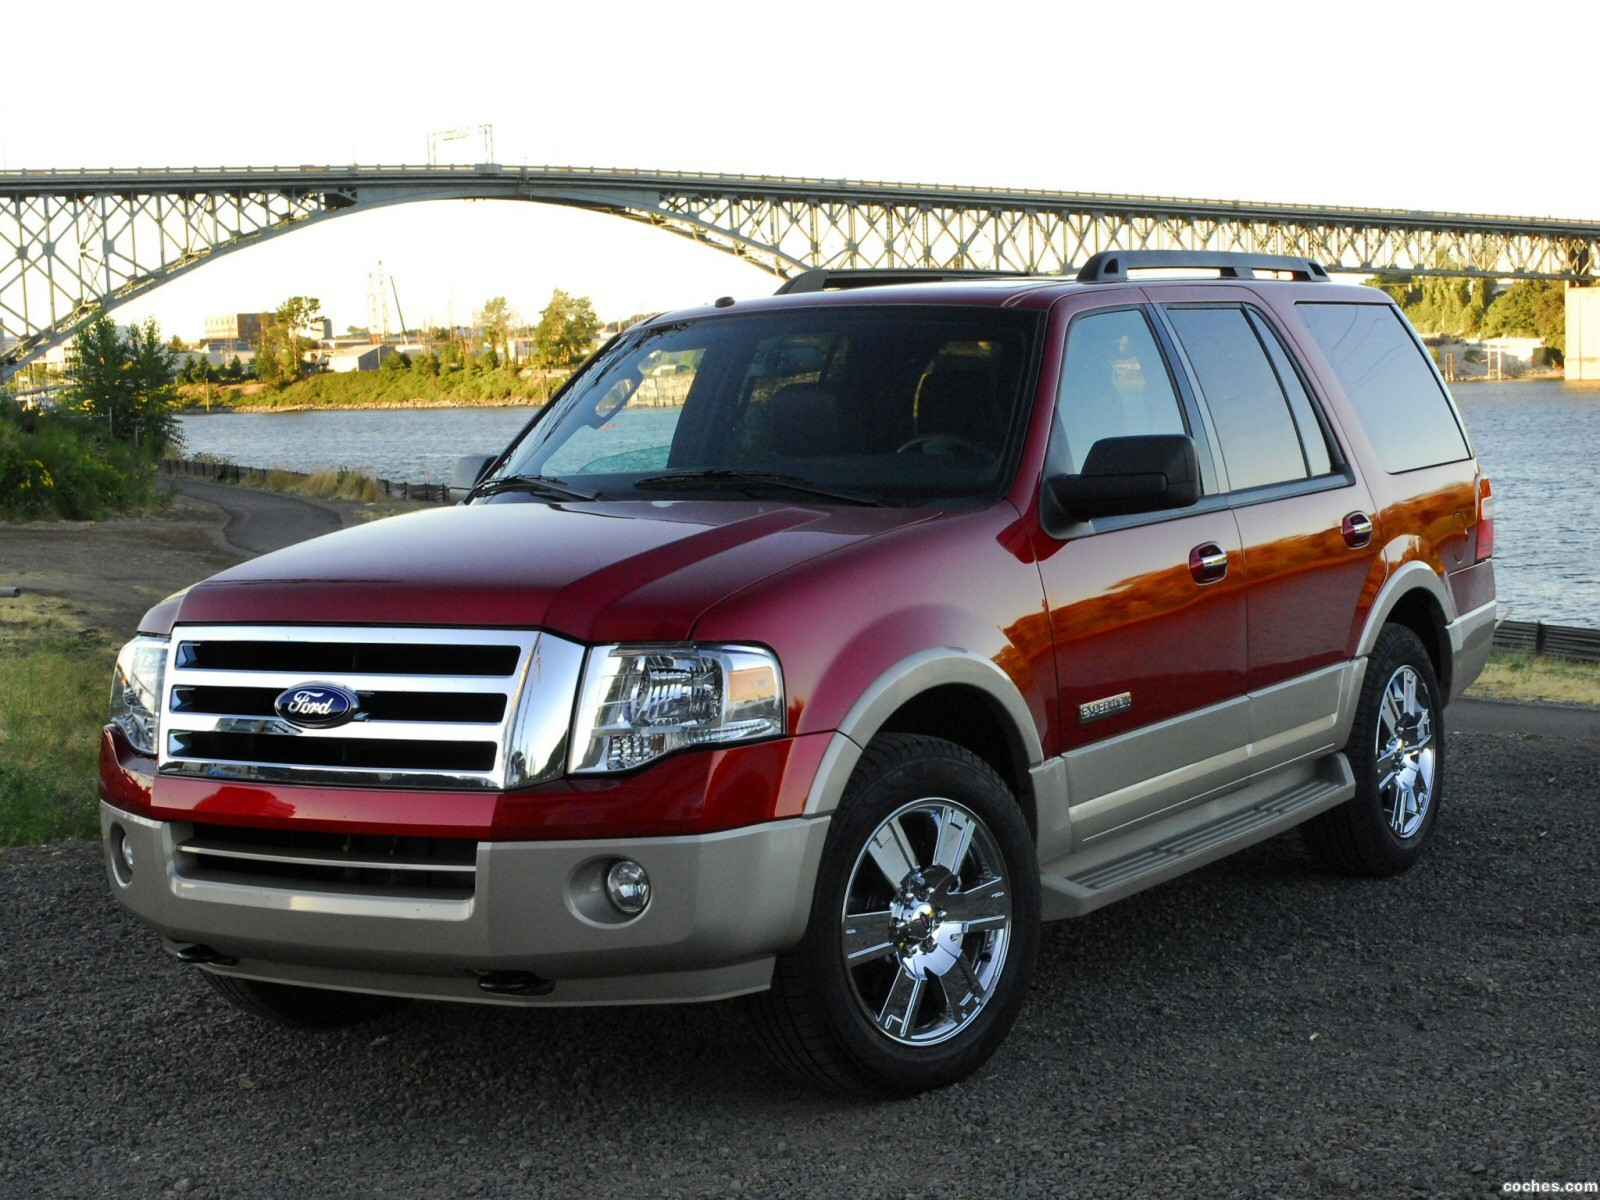 Foto 0 de Ford Expedition 2007